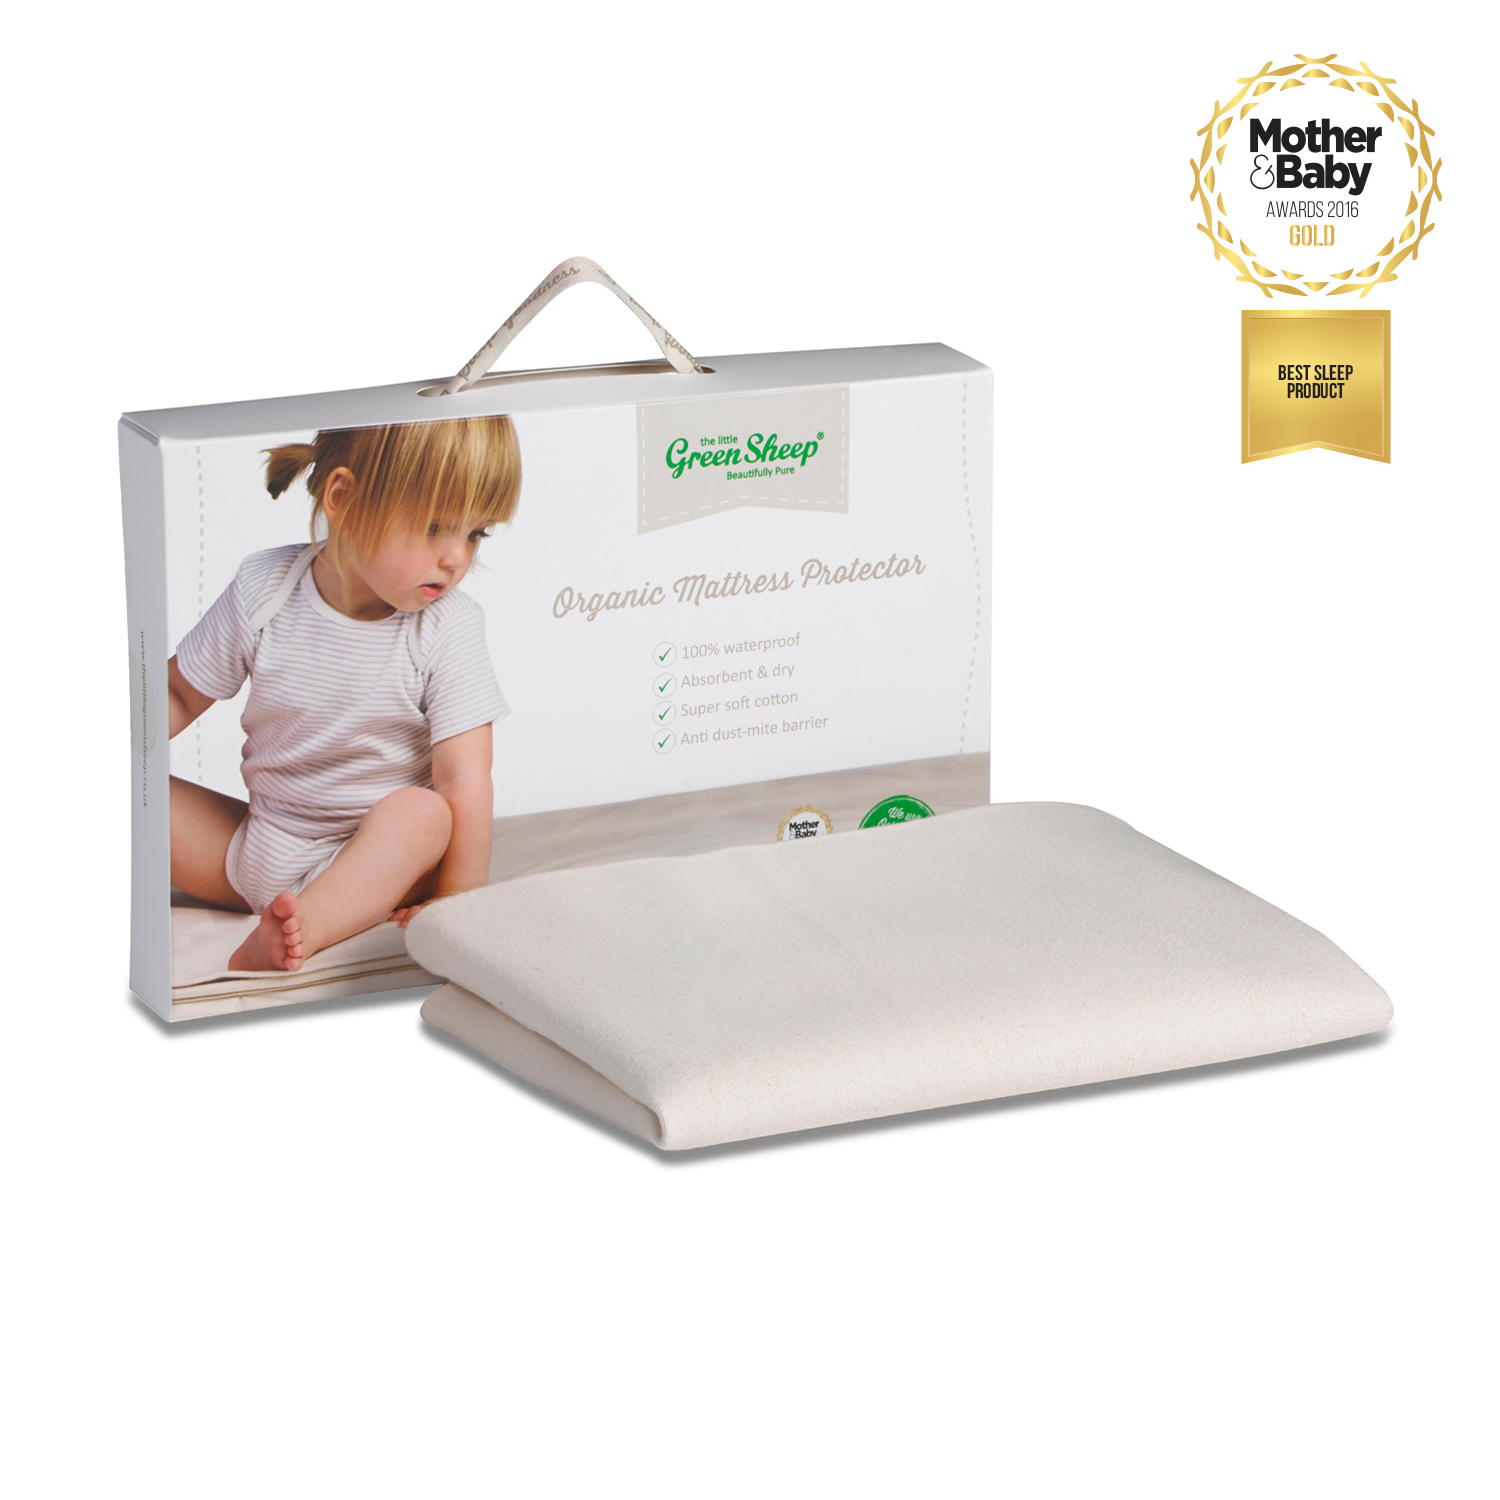 The Little Green Sheep Waterproof Crib Mattress Protector